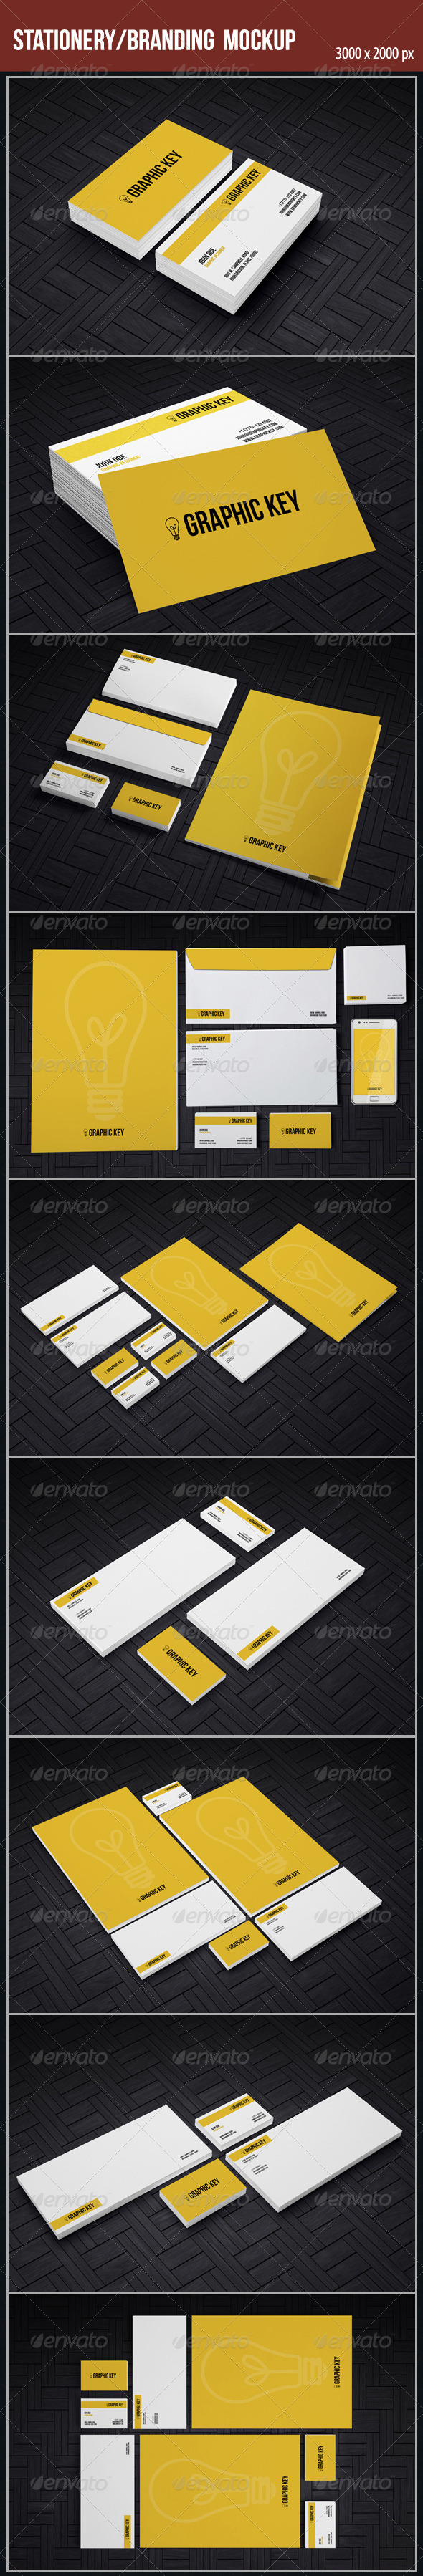 GraphicRiver Staionery Branding Mockup 4596899